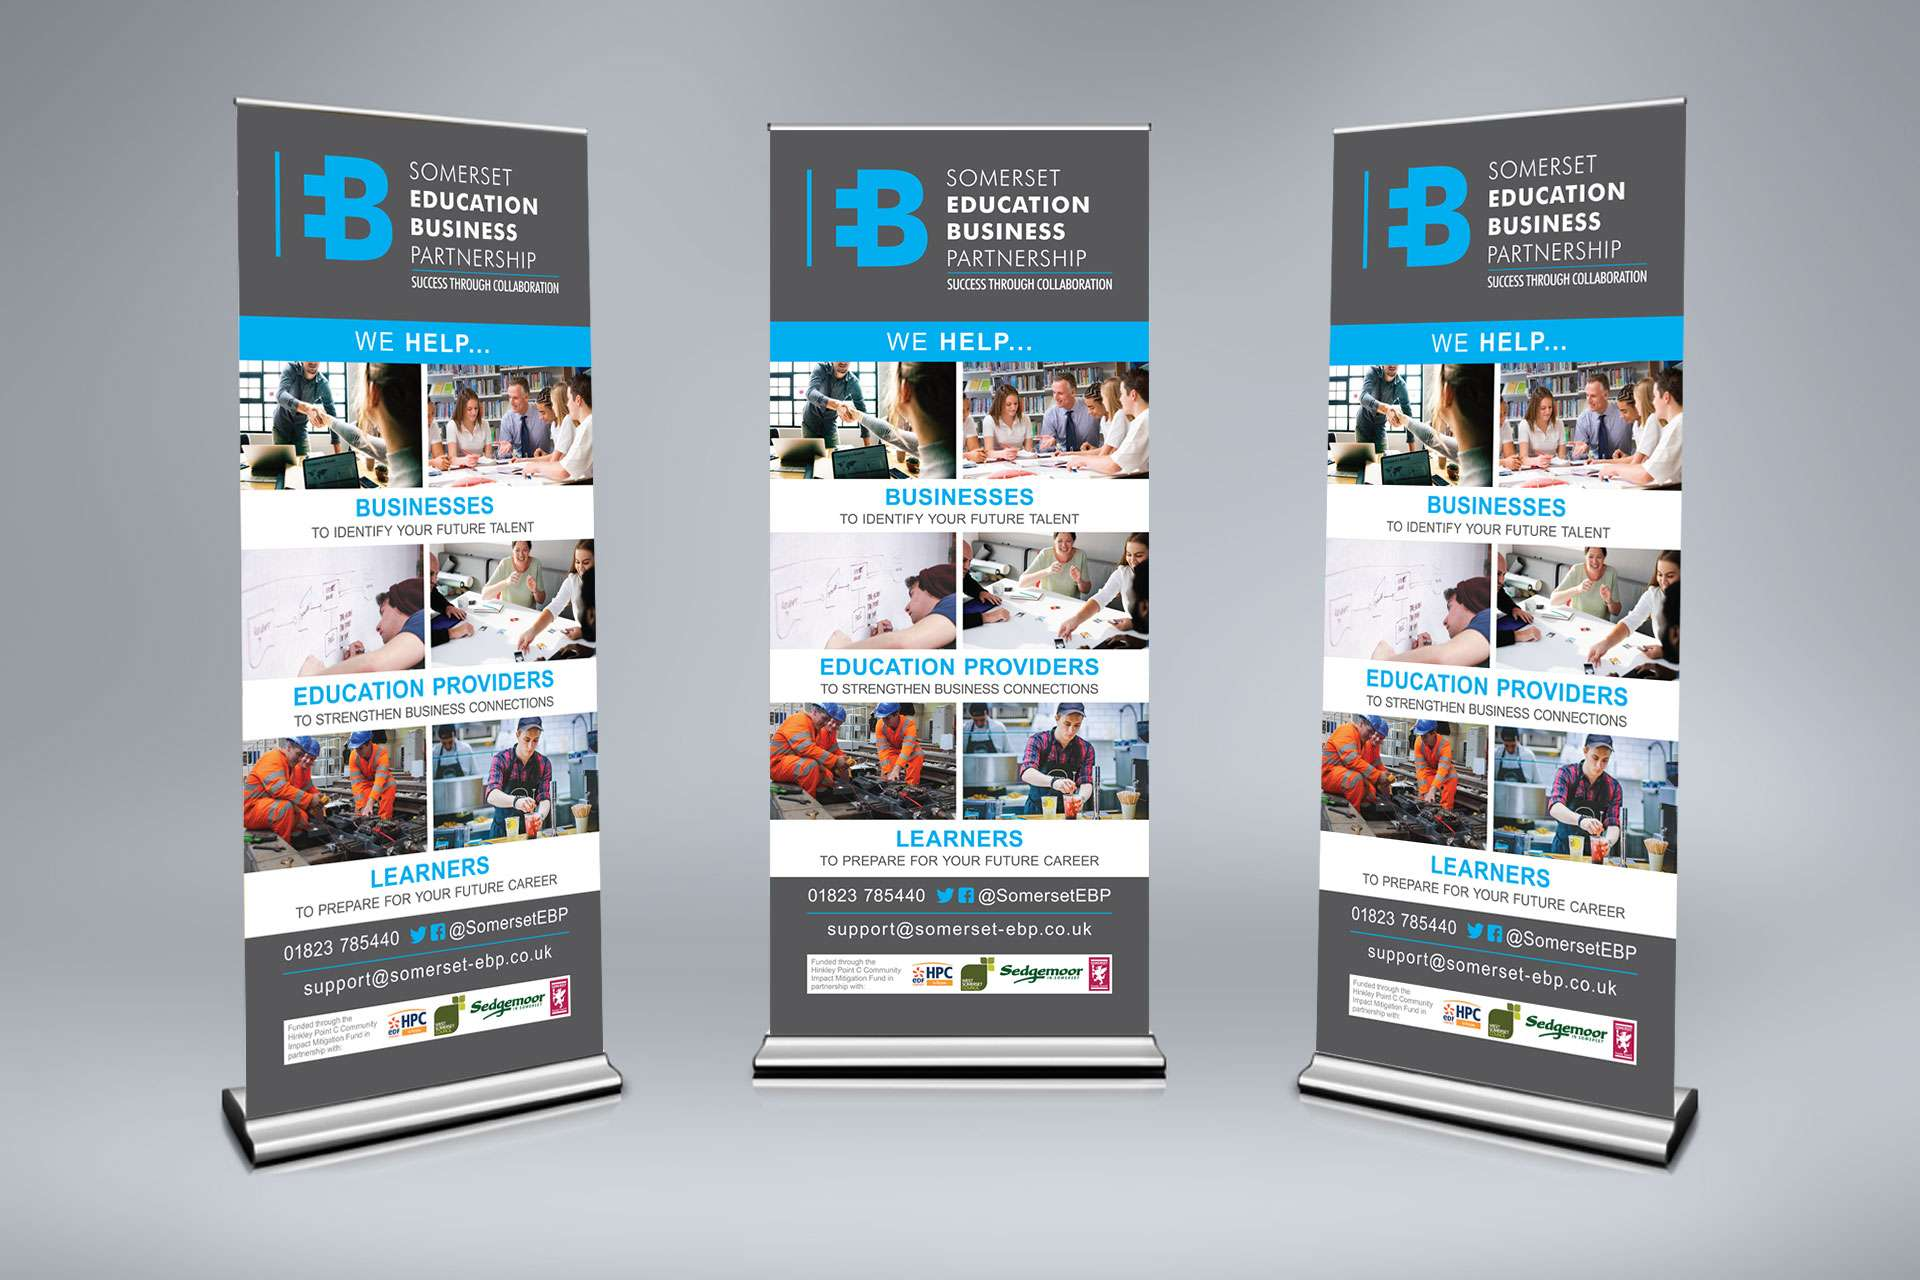 Somerset education business Partnership Pull Up Banner design